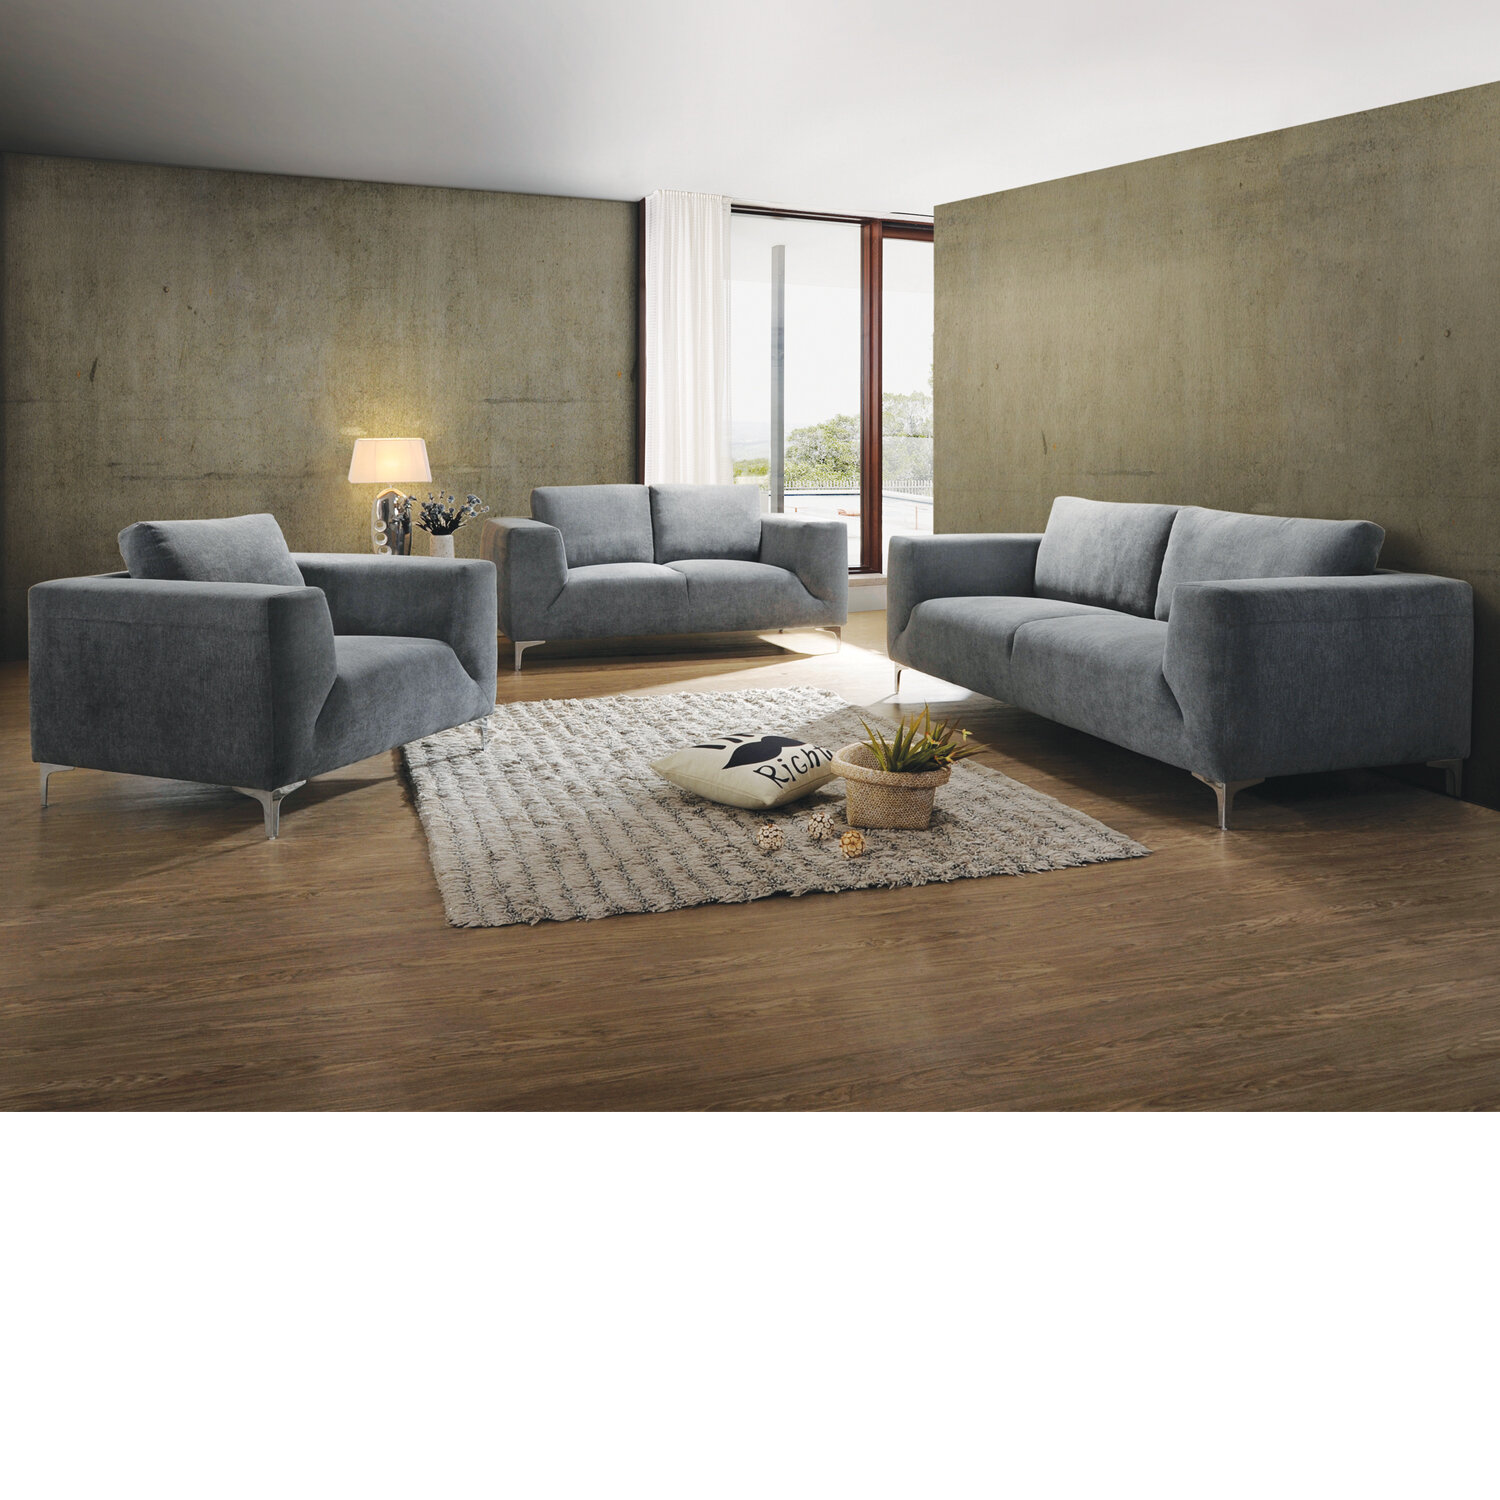 Brubaker 3 Piece Living Room Set & Reviews | AllModern